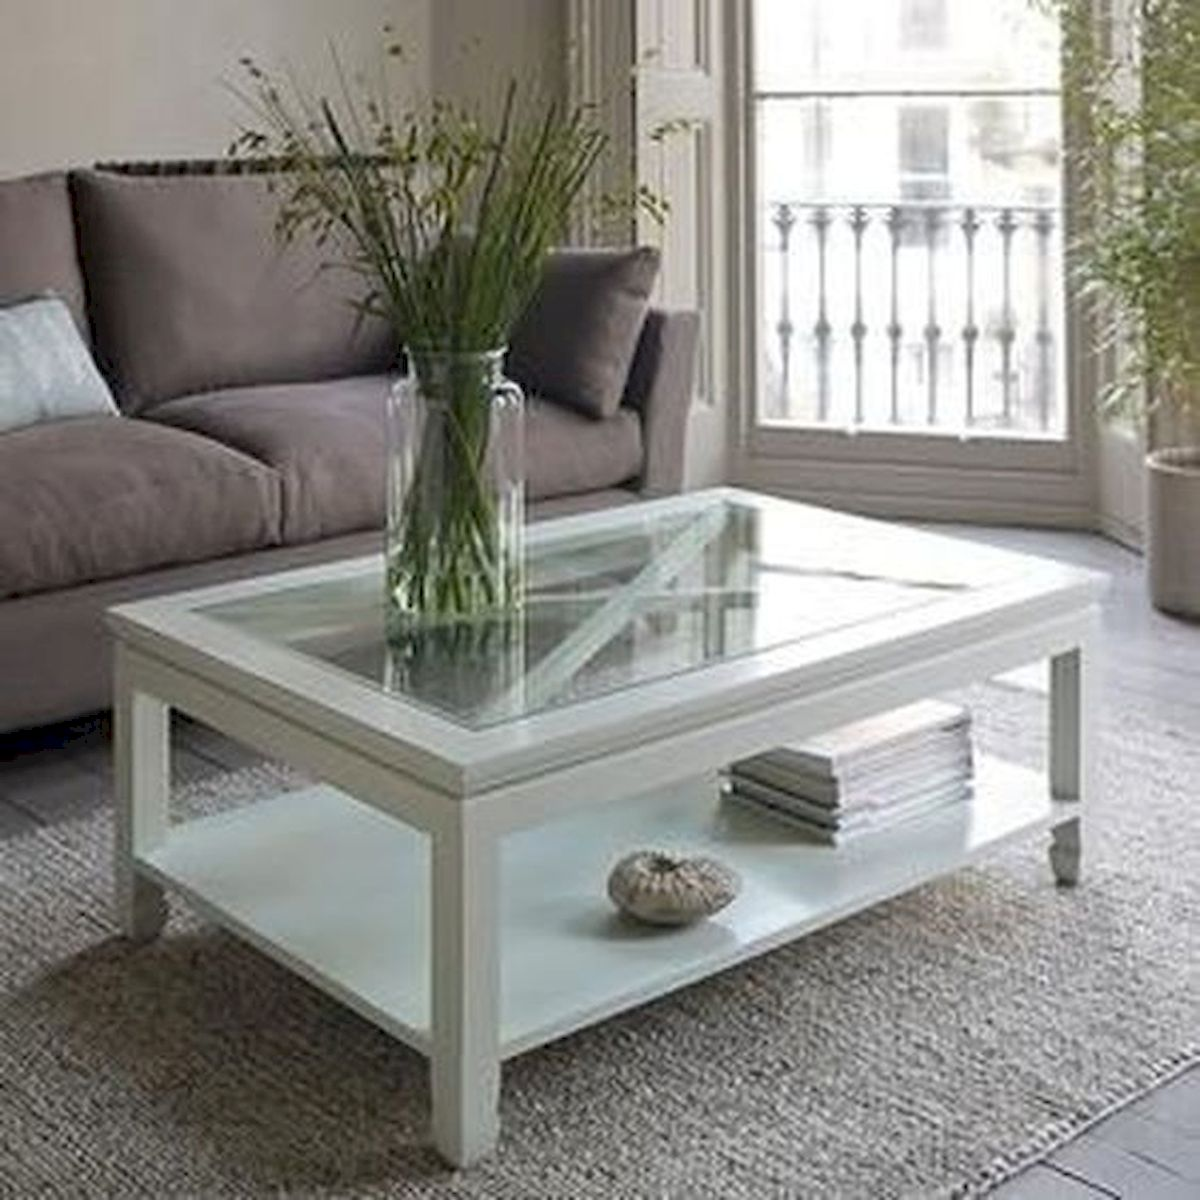 40 Awesome Modern Glass Coffee Table Design Ideas For Your Living Room (36)